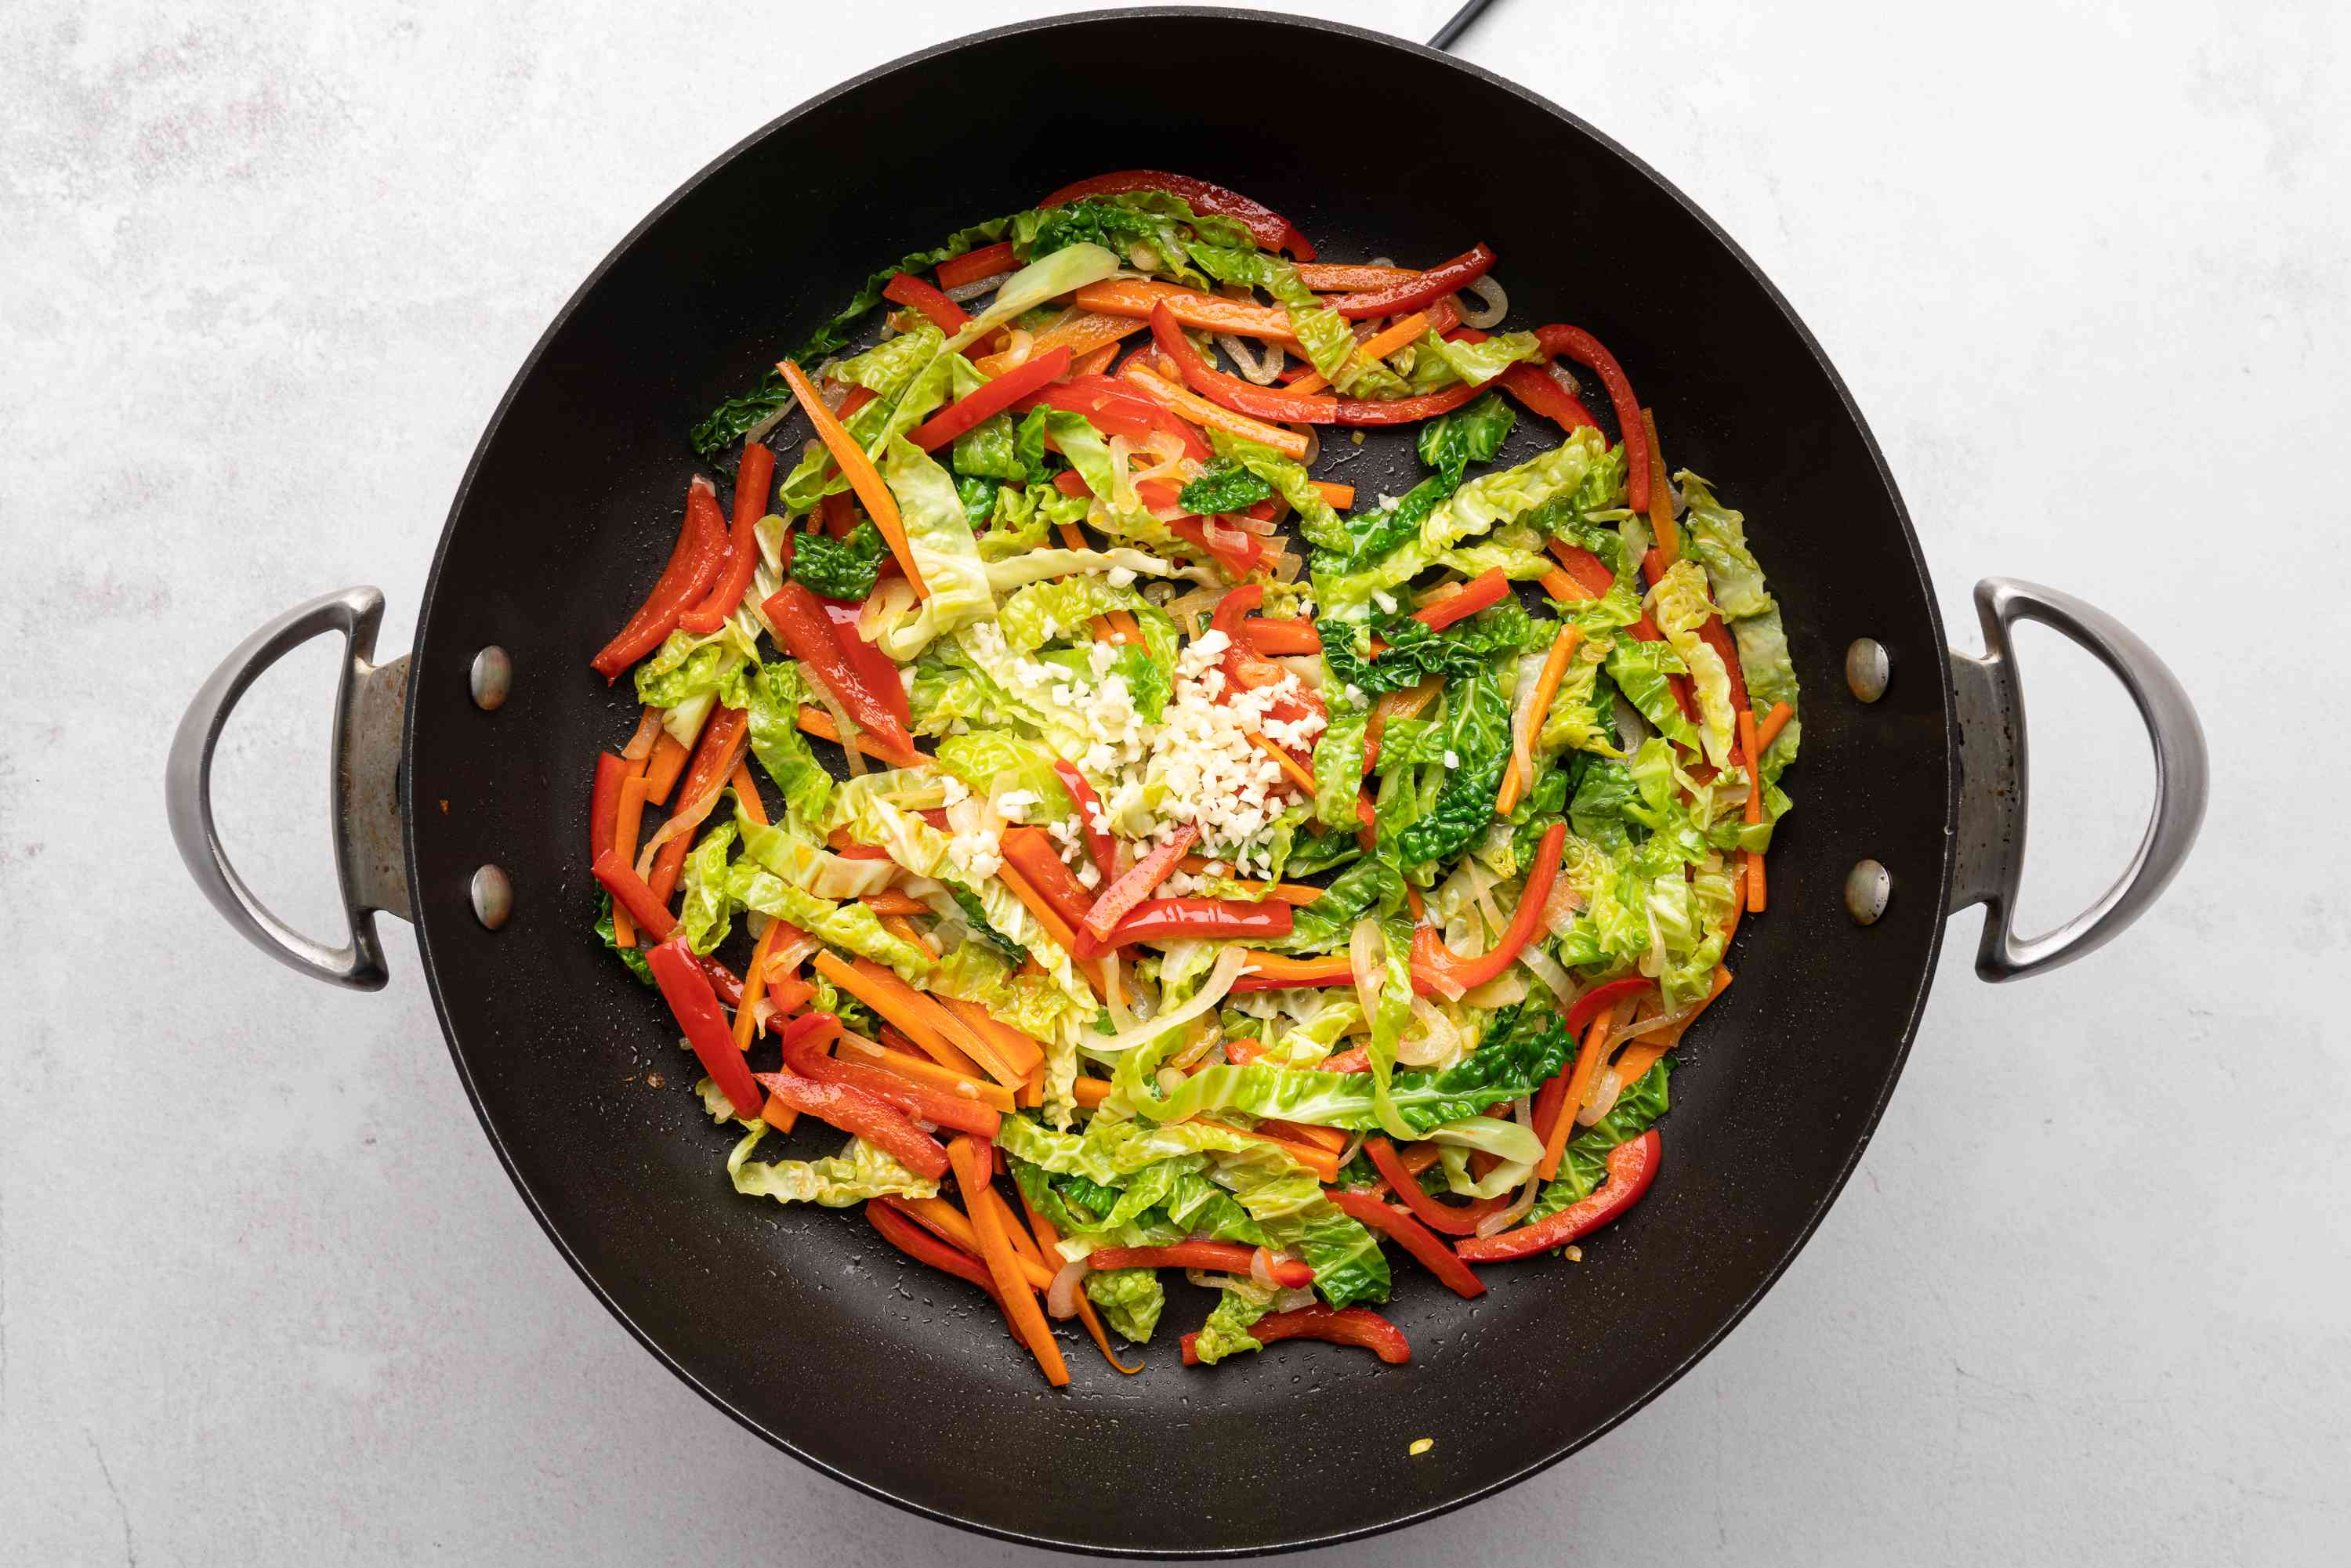 garlic and vegetables in a wok